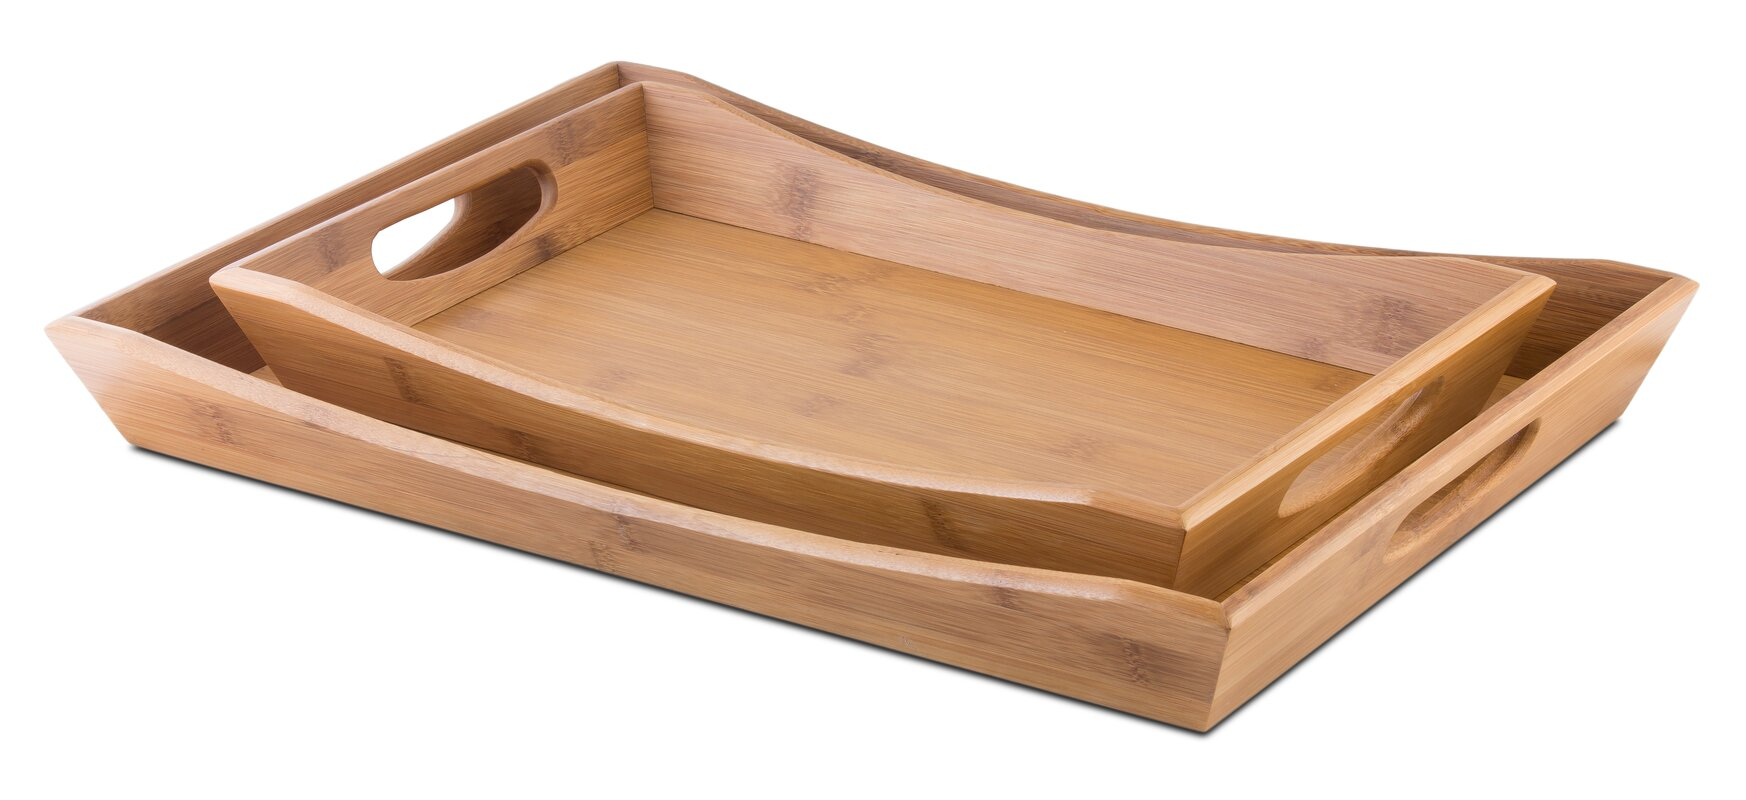 2 Piece Bamboo Serving Tray Set